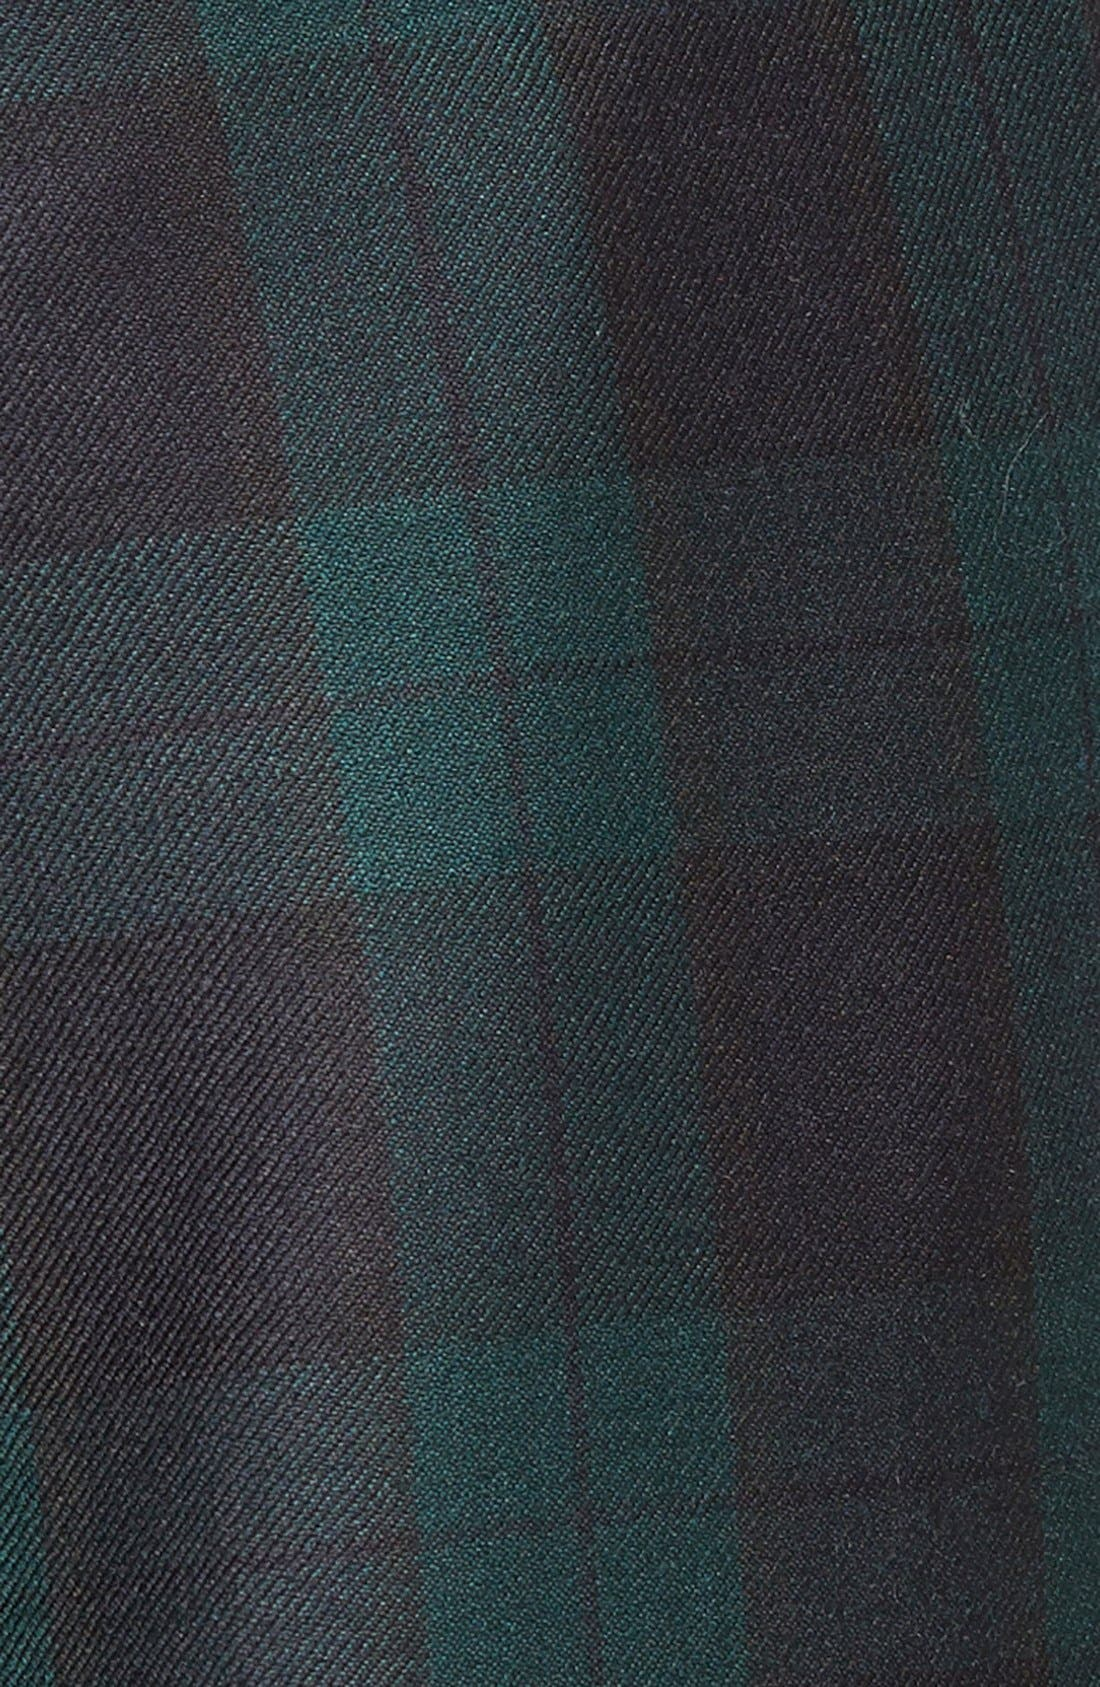 Pleated Plaid Wool Trousers,                             Alternate thumbnail 2, color,                             GREEN